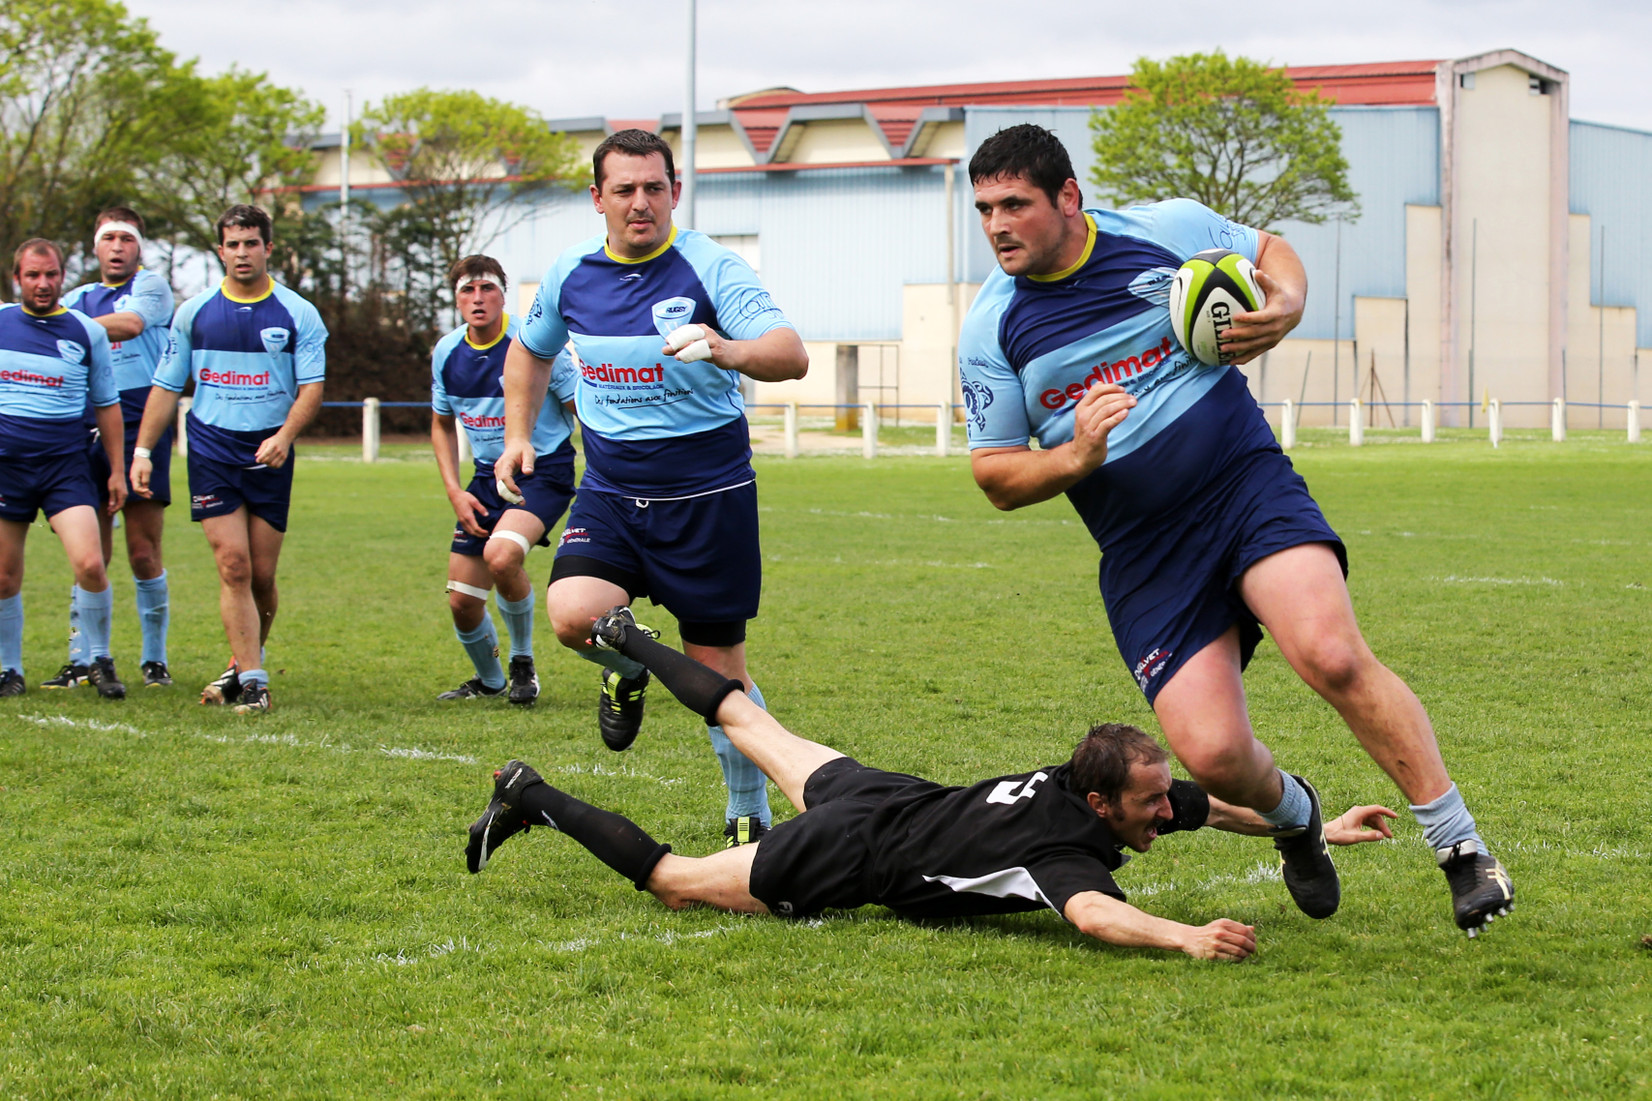 AS-LacanauRugby_06/04/2014_(c)JeromeAUGEREAU/1MOMENT1IMAGE